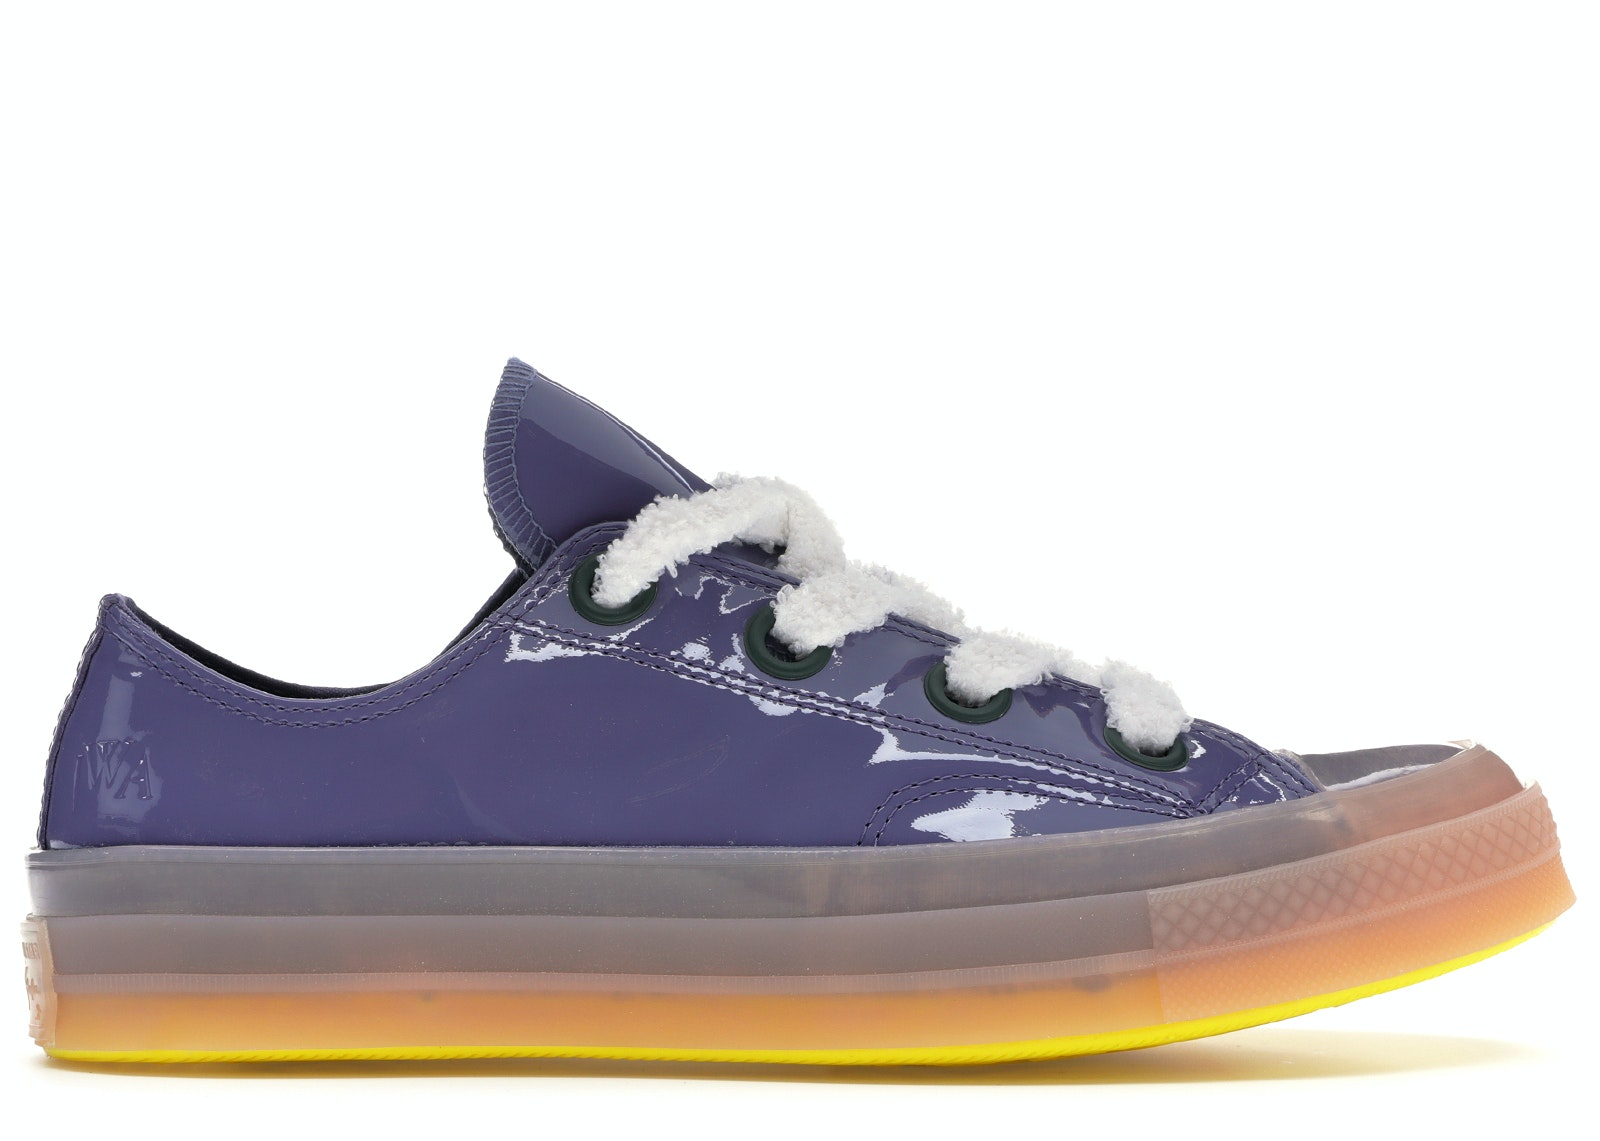 Converse Chuck Taylor All-Star 70s Ox Toy JW Anderson Purple